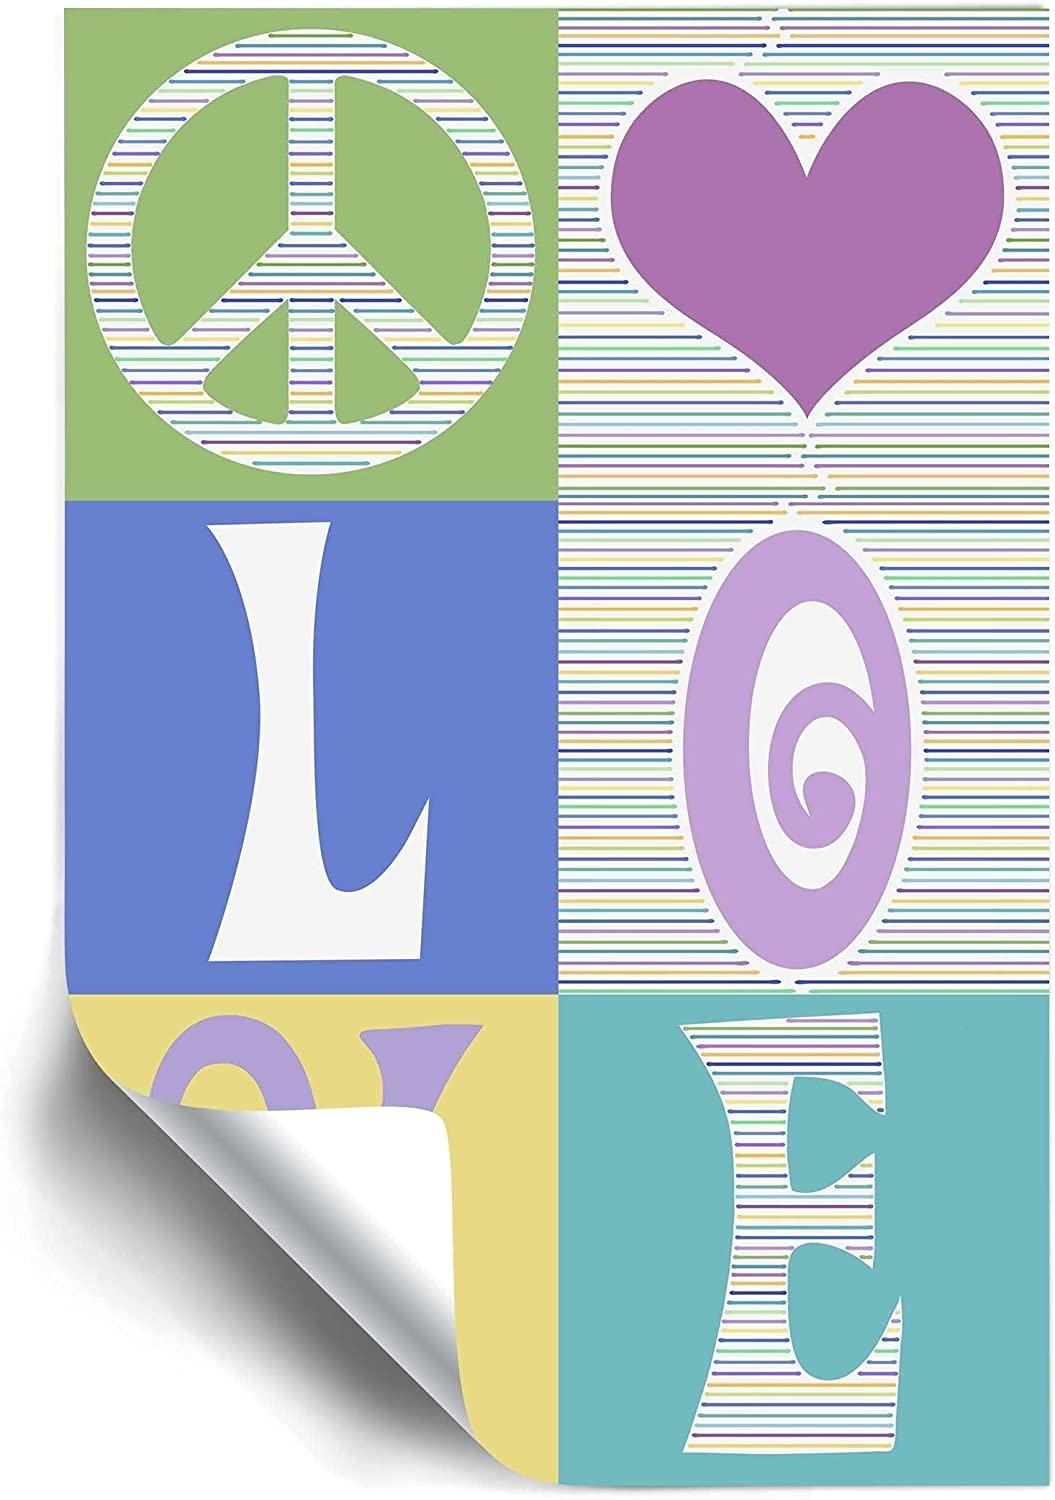 ArtWall All You Need Jacksonville Max 82% OFF Mall Teal Wall 32x48 Removable Art Mural